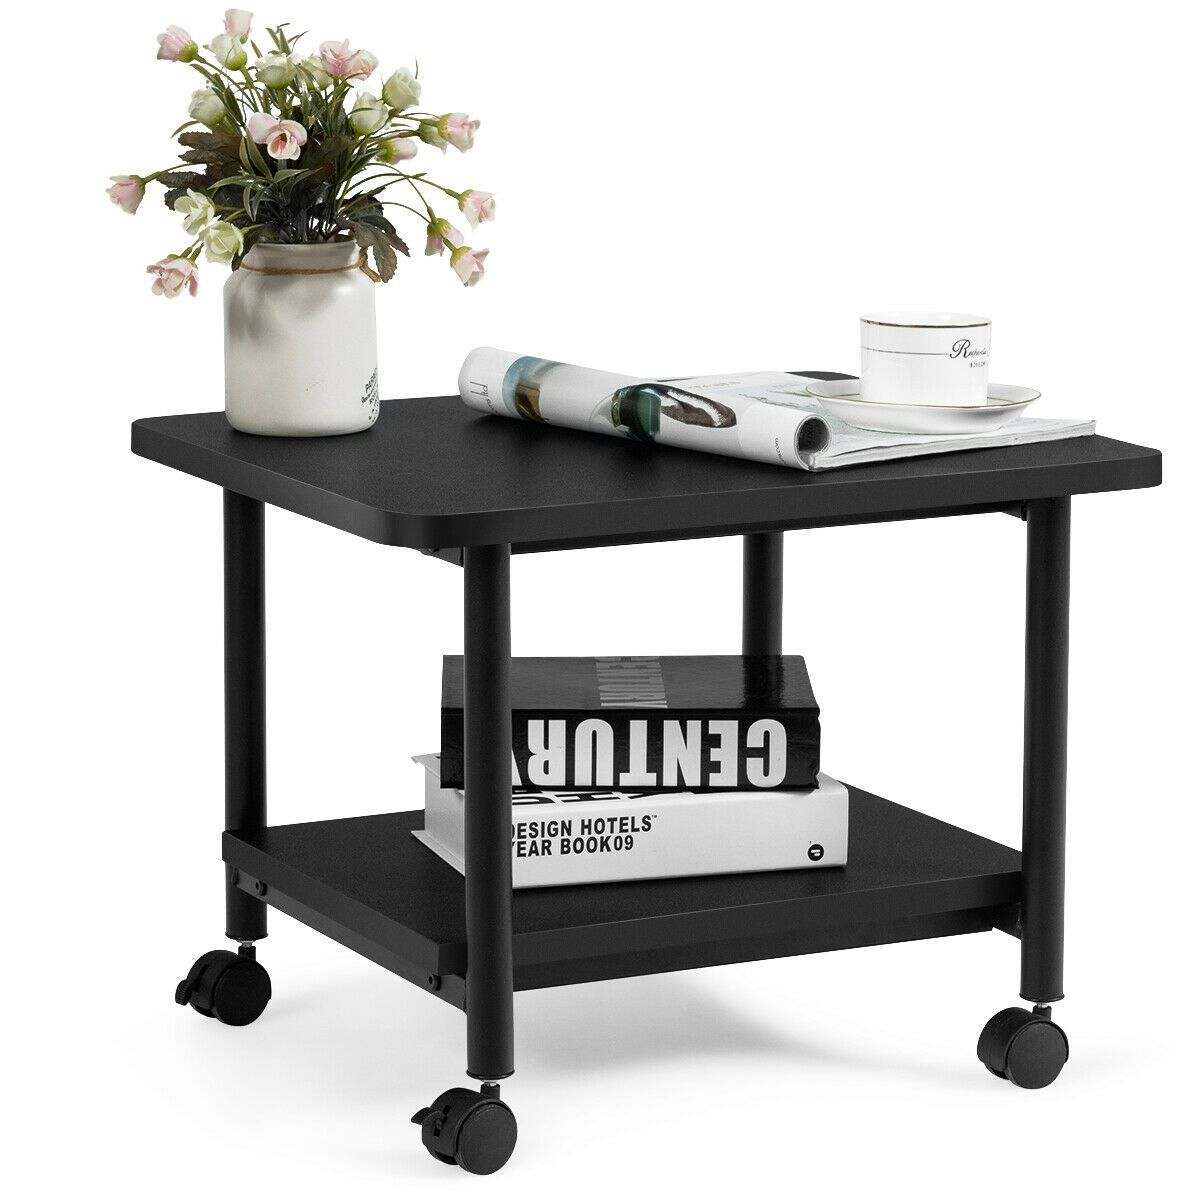 Under Desk Printer Stand With 360 Swivel Casters Casters Desk Officeorganizationatworkp In 2020 Printer Stand Swivel Casters Office Organization At Work